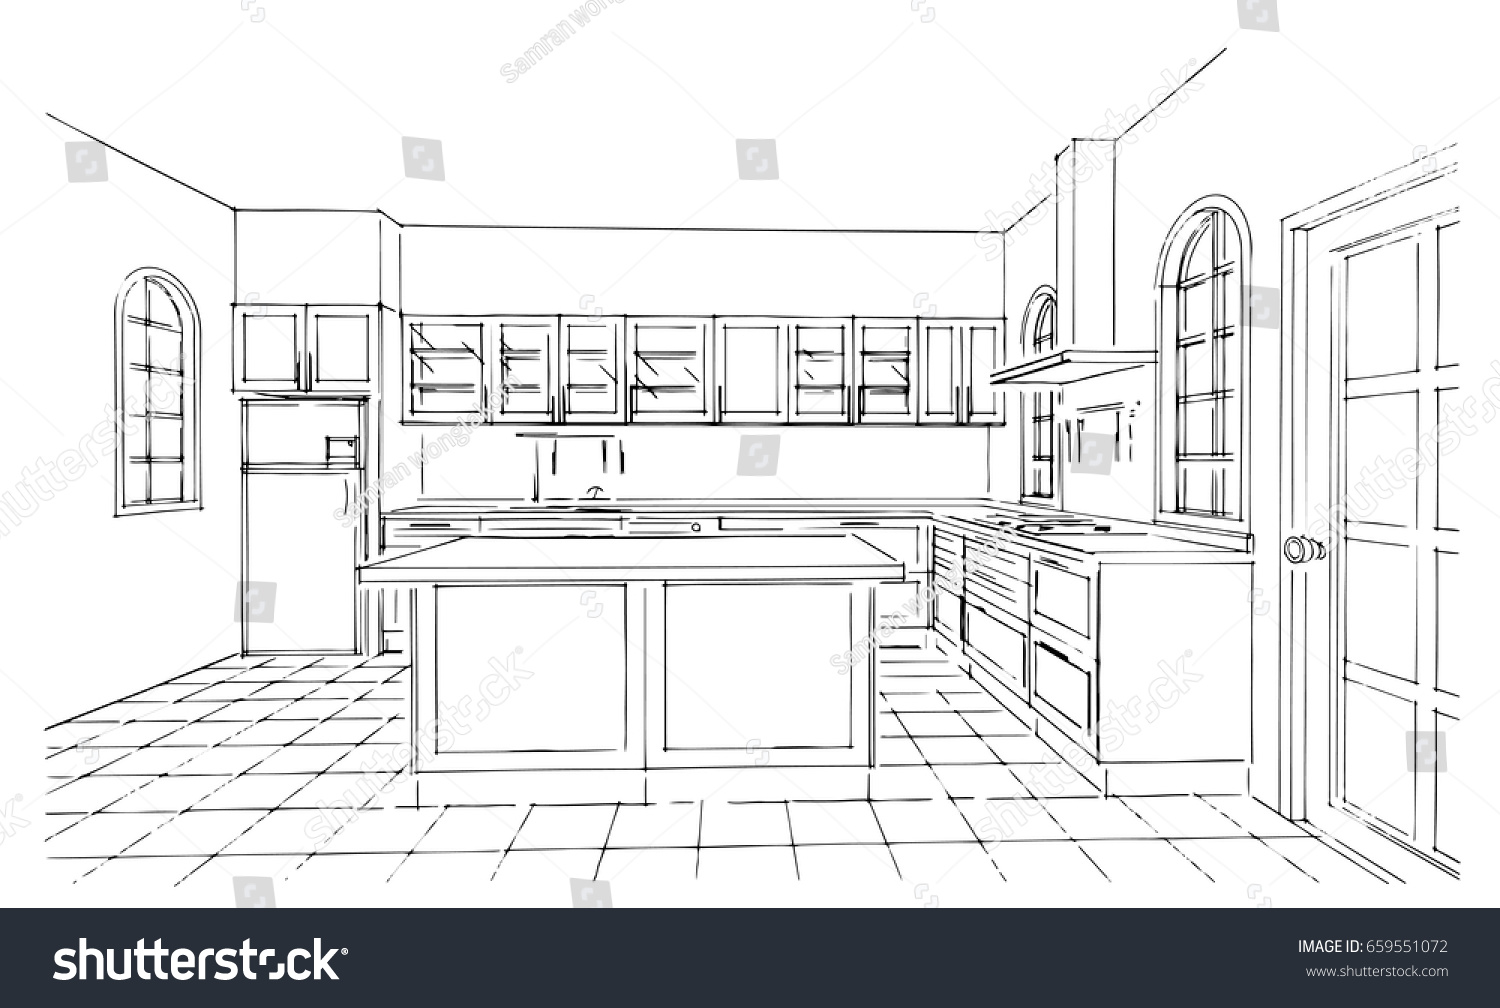 Perspective Kitchen Sketch Design Stock Vector Royalty Free